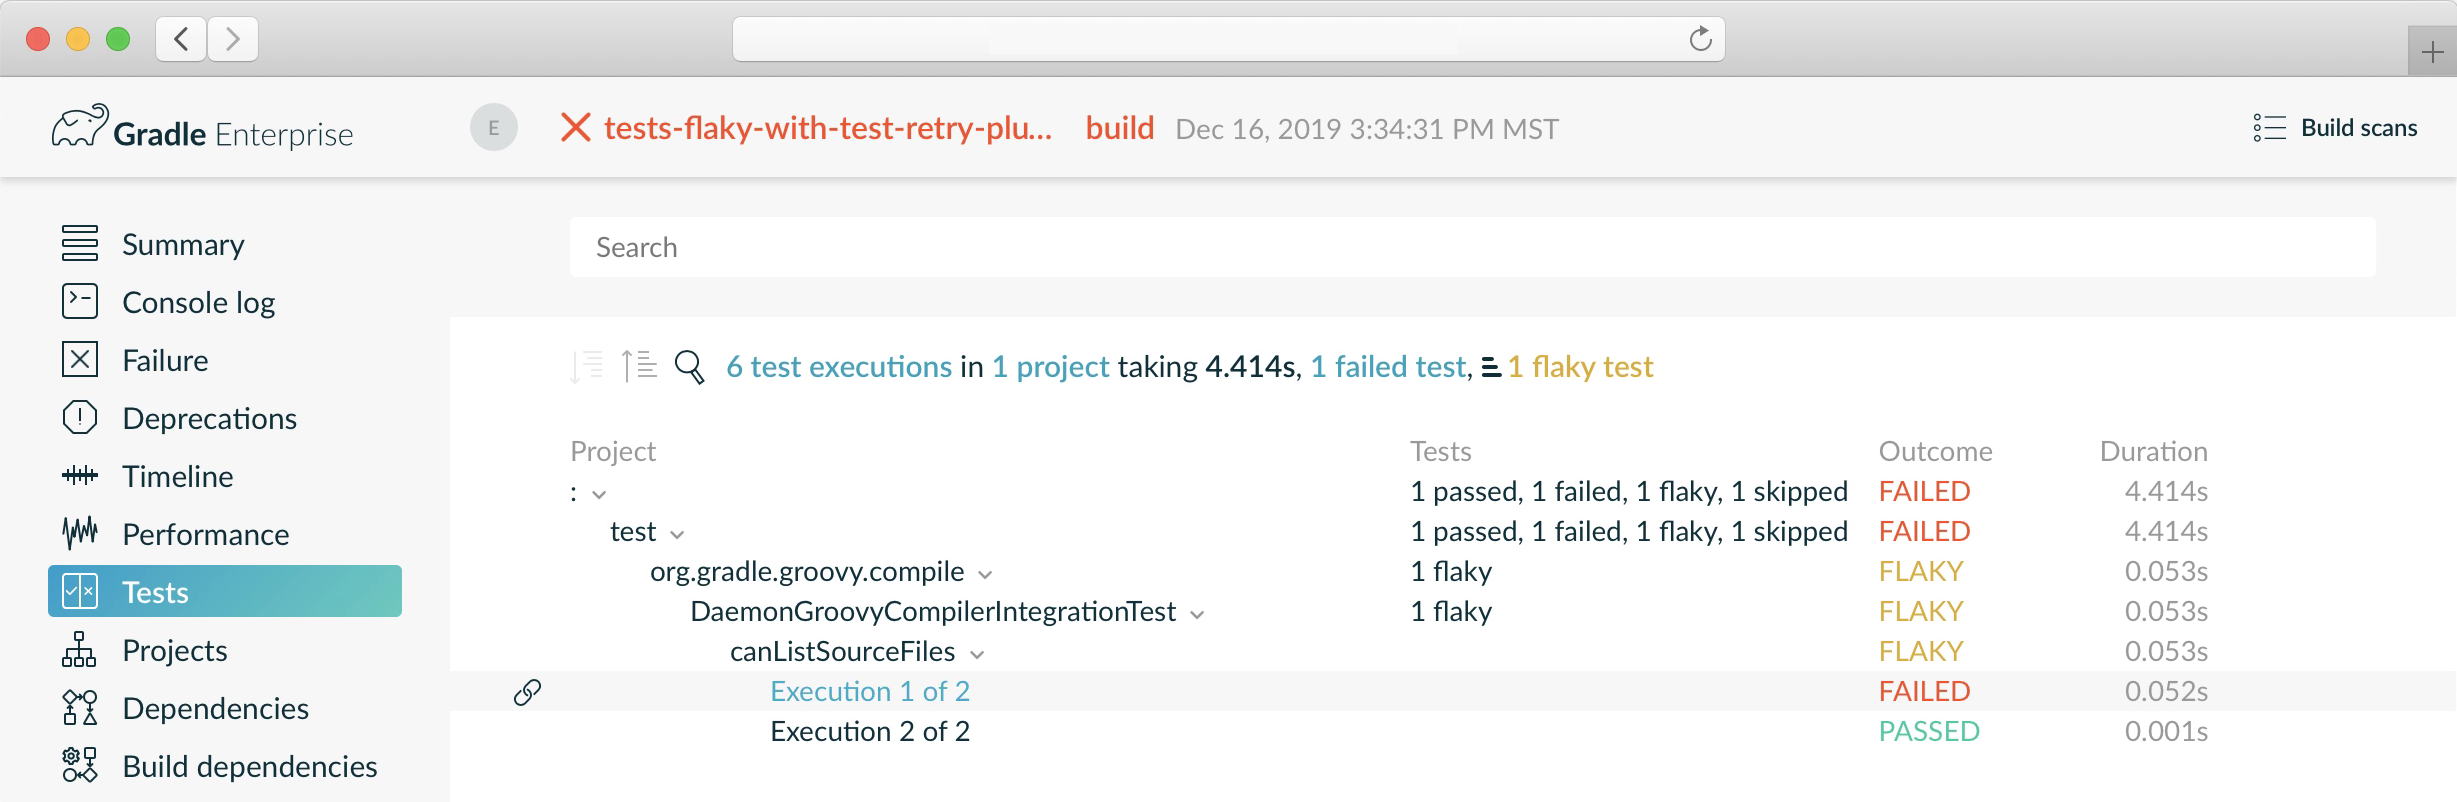 Build scan with flaky tests